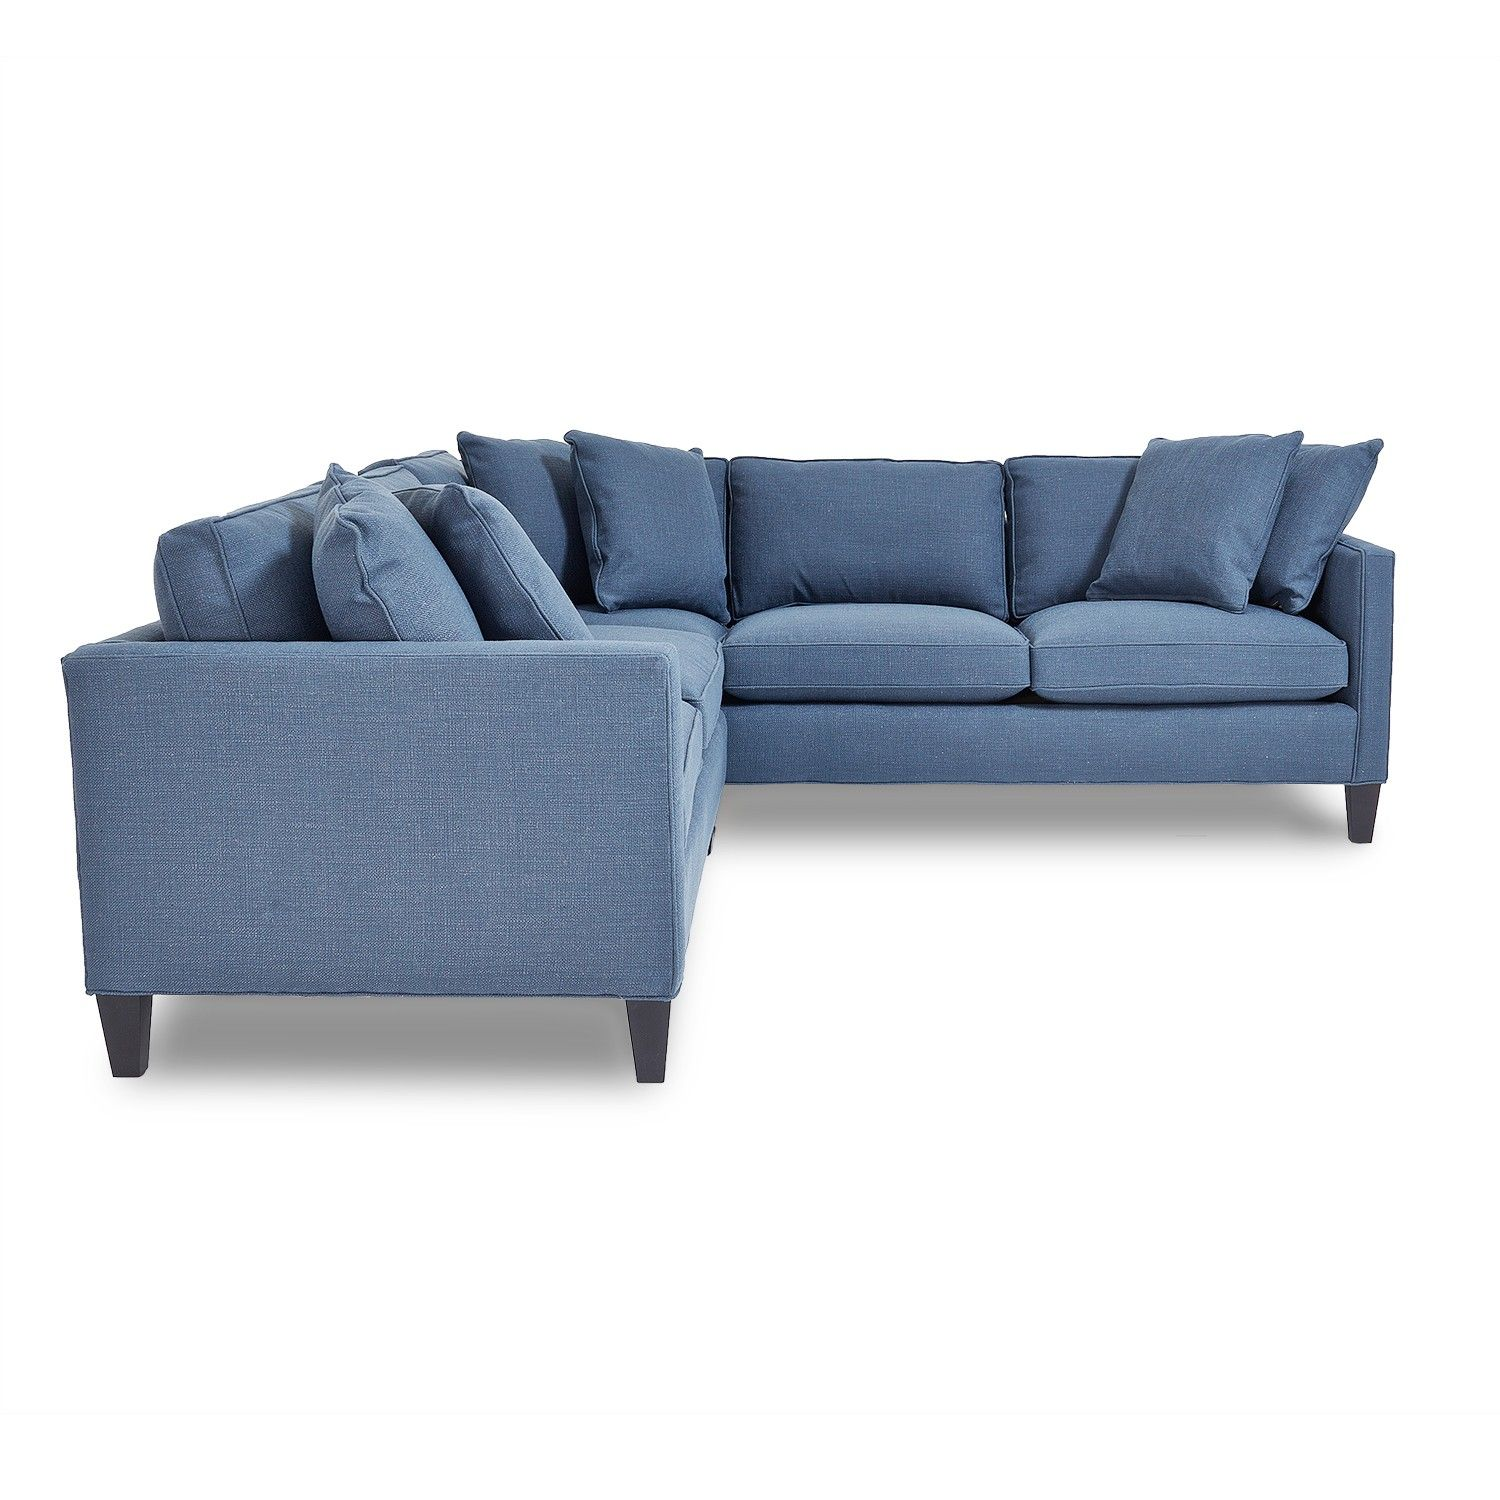 Modern lines meet Americana design in the Lora sectional a vision